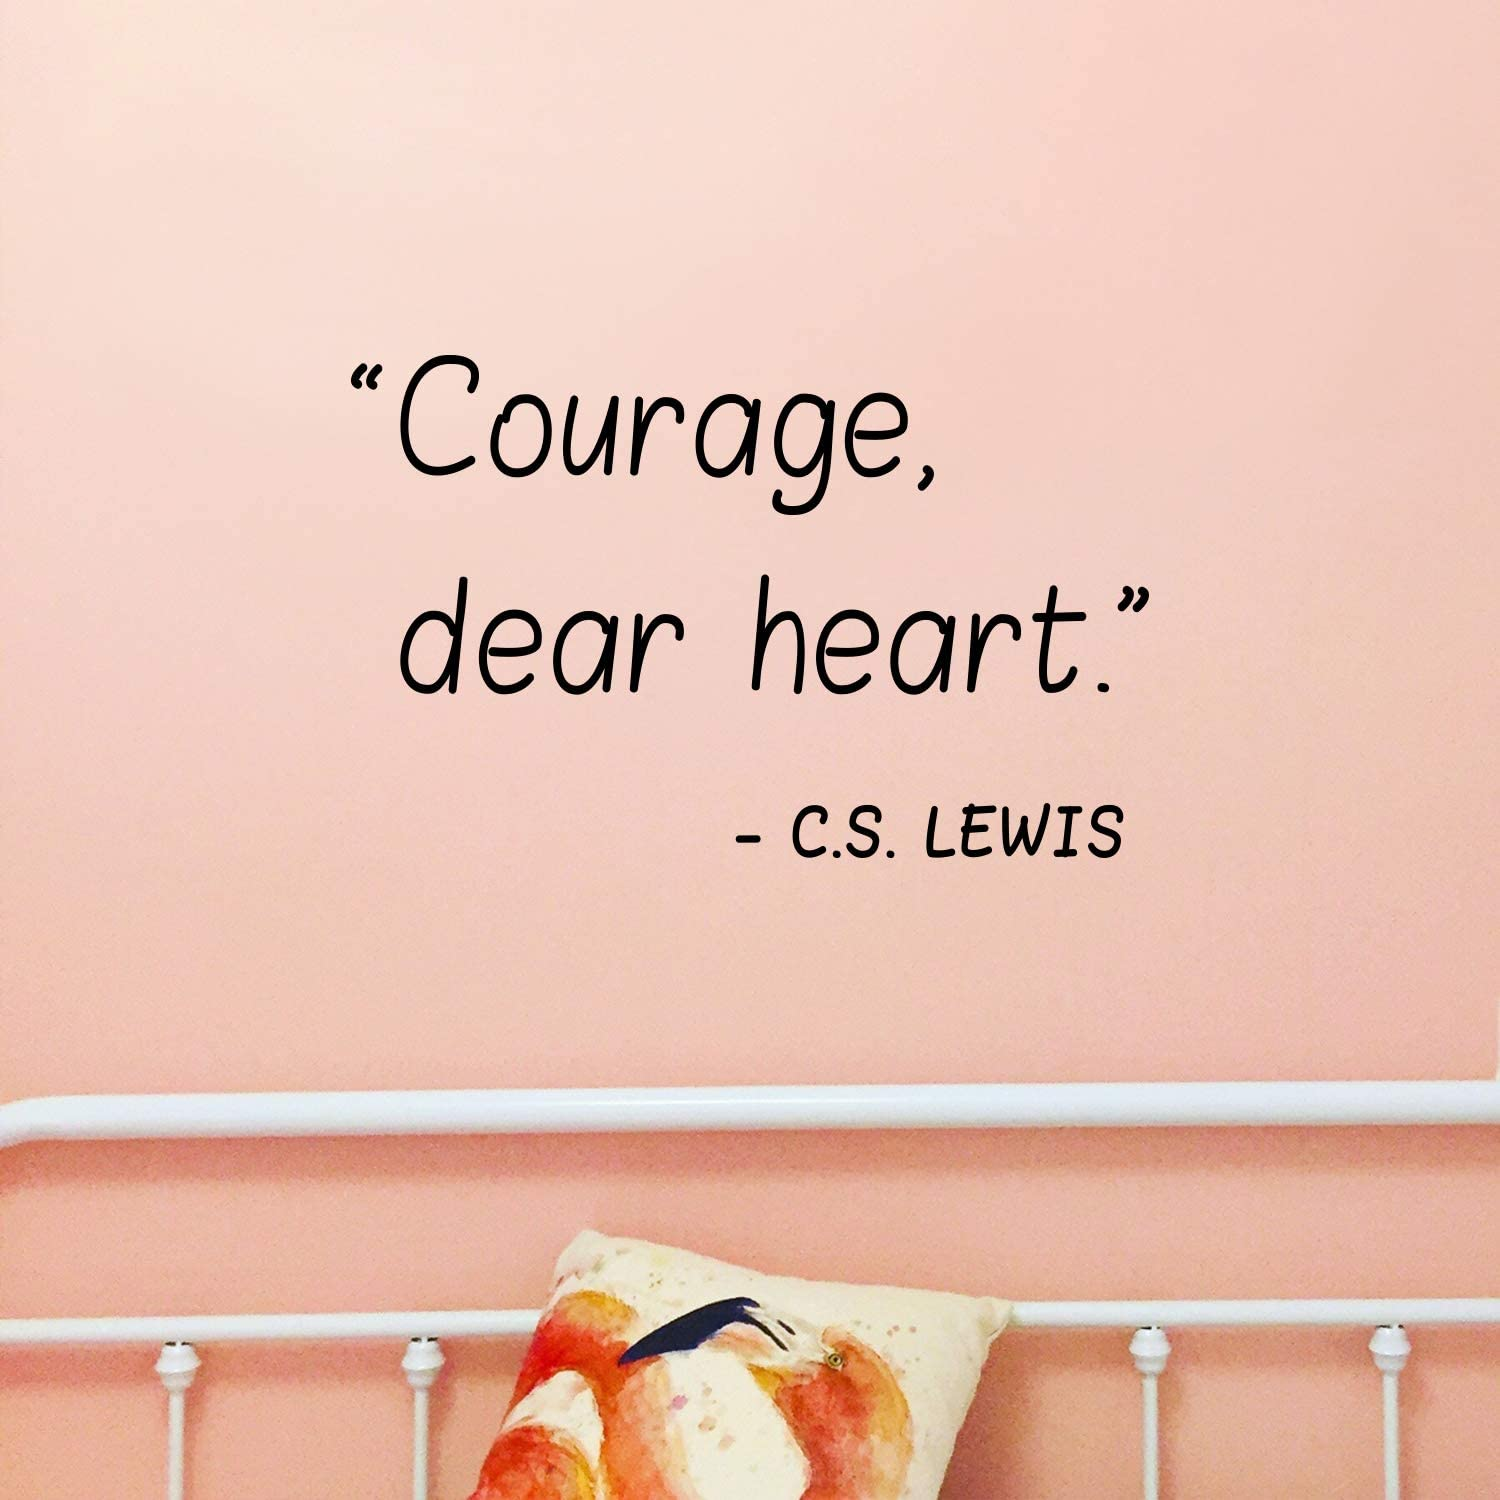 """Vinyl Wall Art Decal - Courage Dear Heart - 22"""" x 18"""" - C.S. Lewis Motivational Life Quote for Home Bedroom Living Room Work Office - Positive Quotes for Apartment Workplace Decor"""